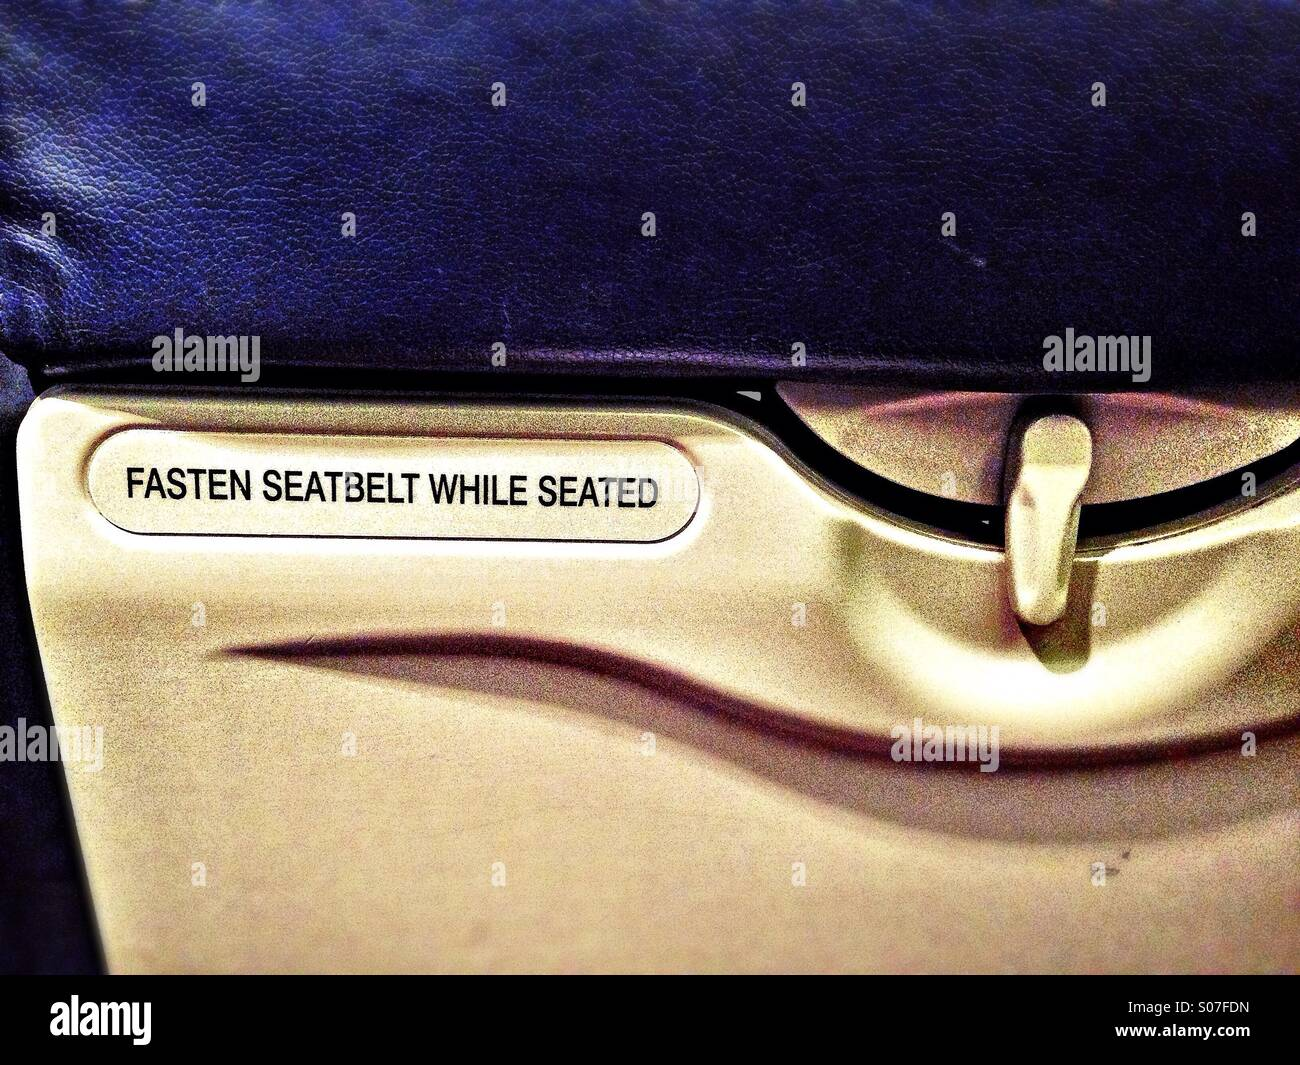 Detail in front of an airplane's seat - Stock Image